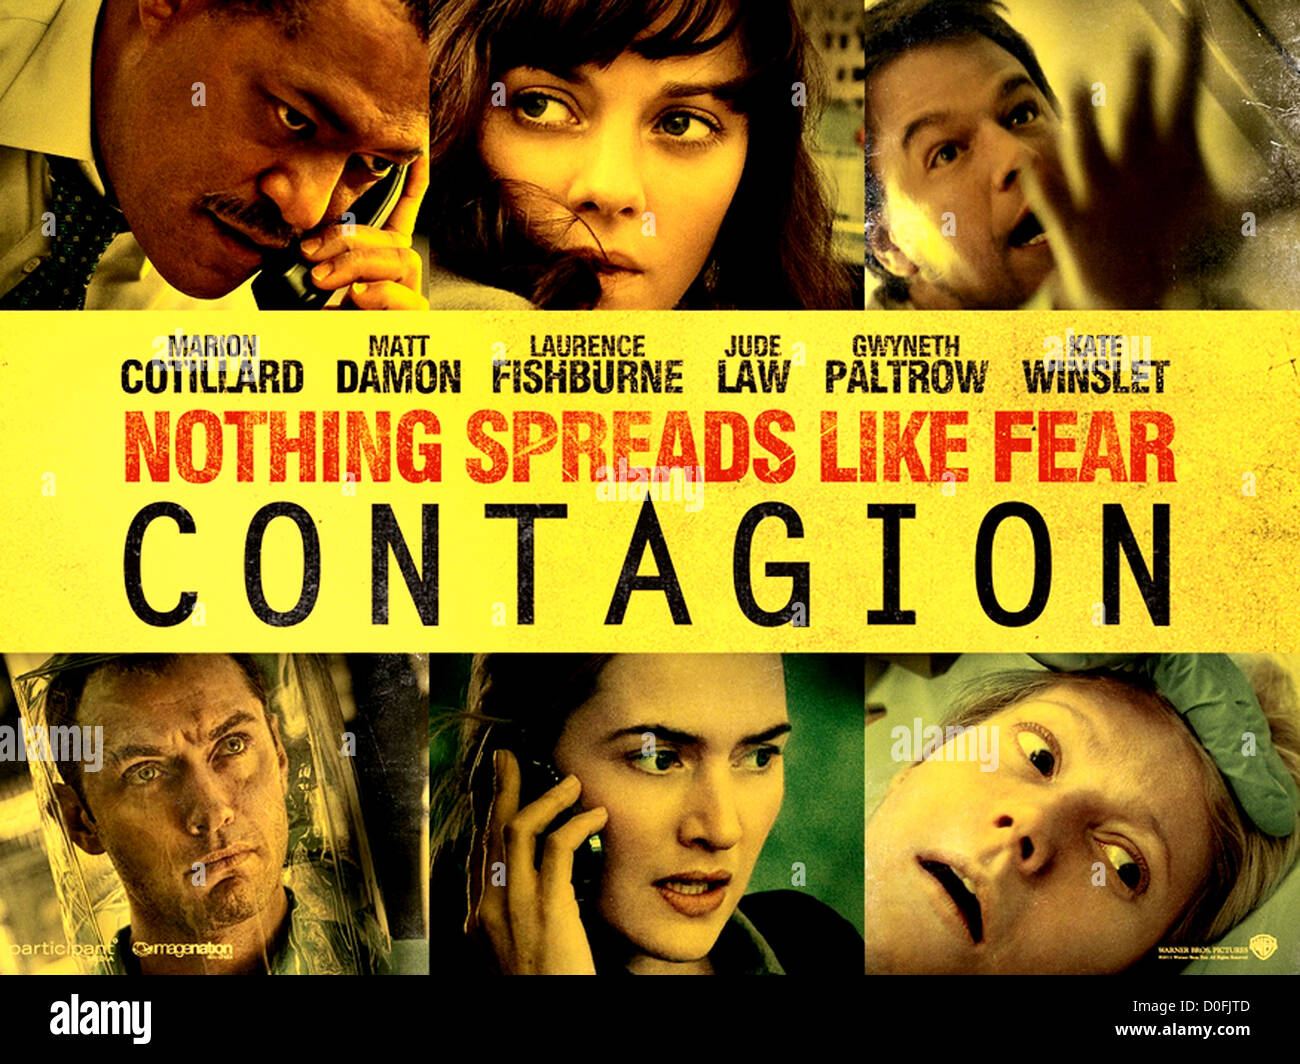 CONTAGION  Poster for 2011 Warner Bros film - Stock Image